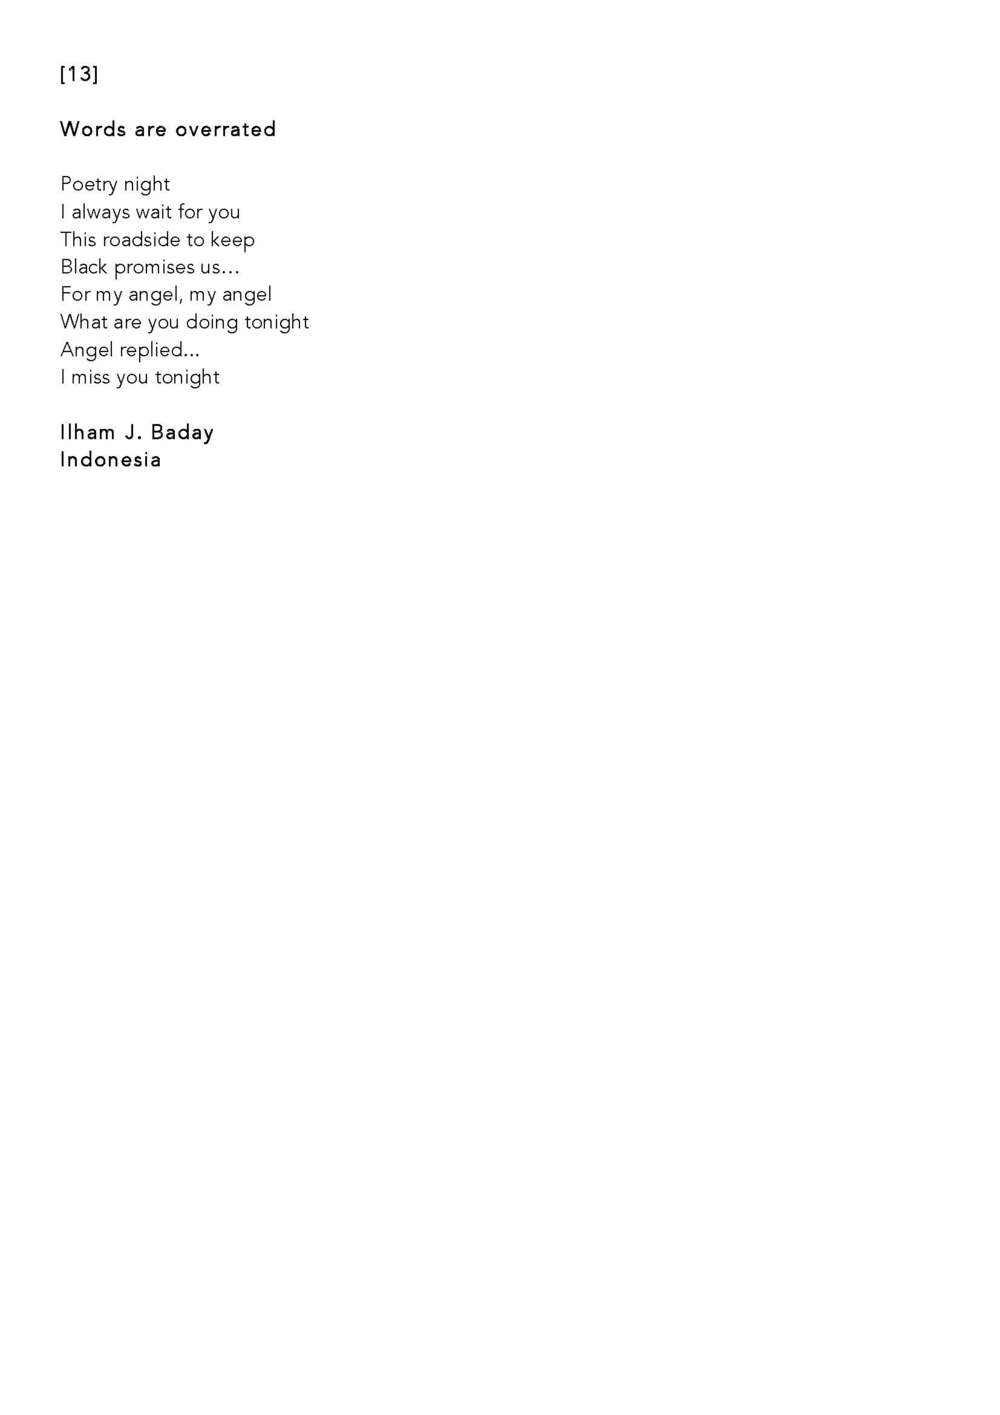 Poetry Collection - Everyone can Poetry _ For 22 June 2014_Page_13.jpg